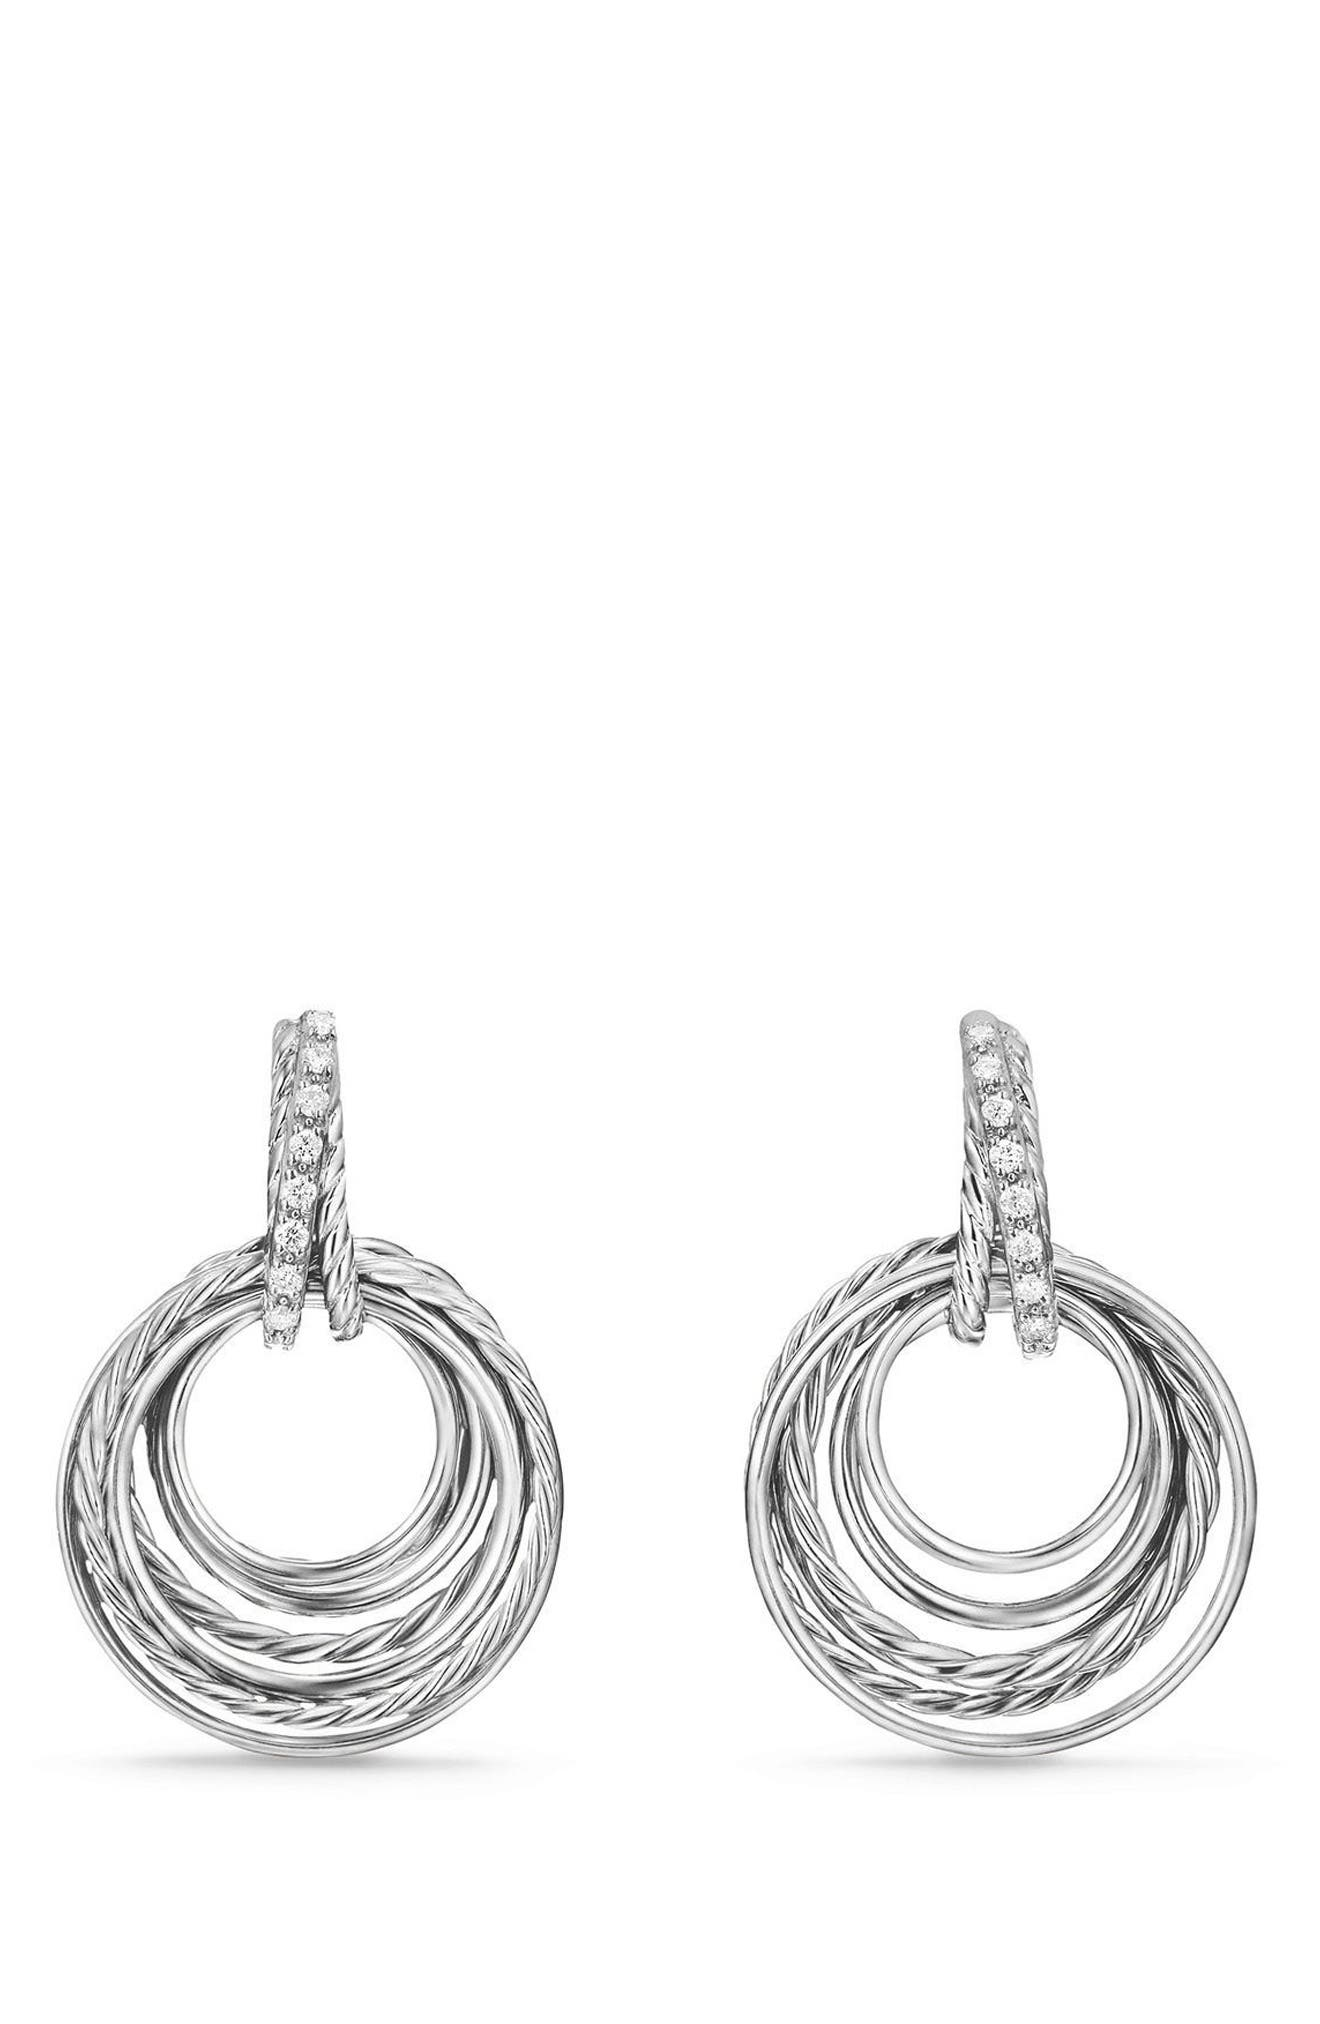 Crossover Drop Earrings with Diamonds,                             Main thumbnail 1, color,                             SILVER